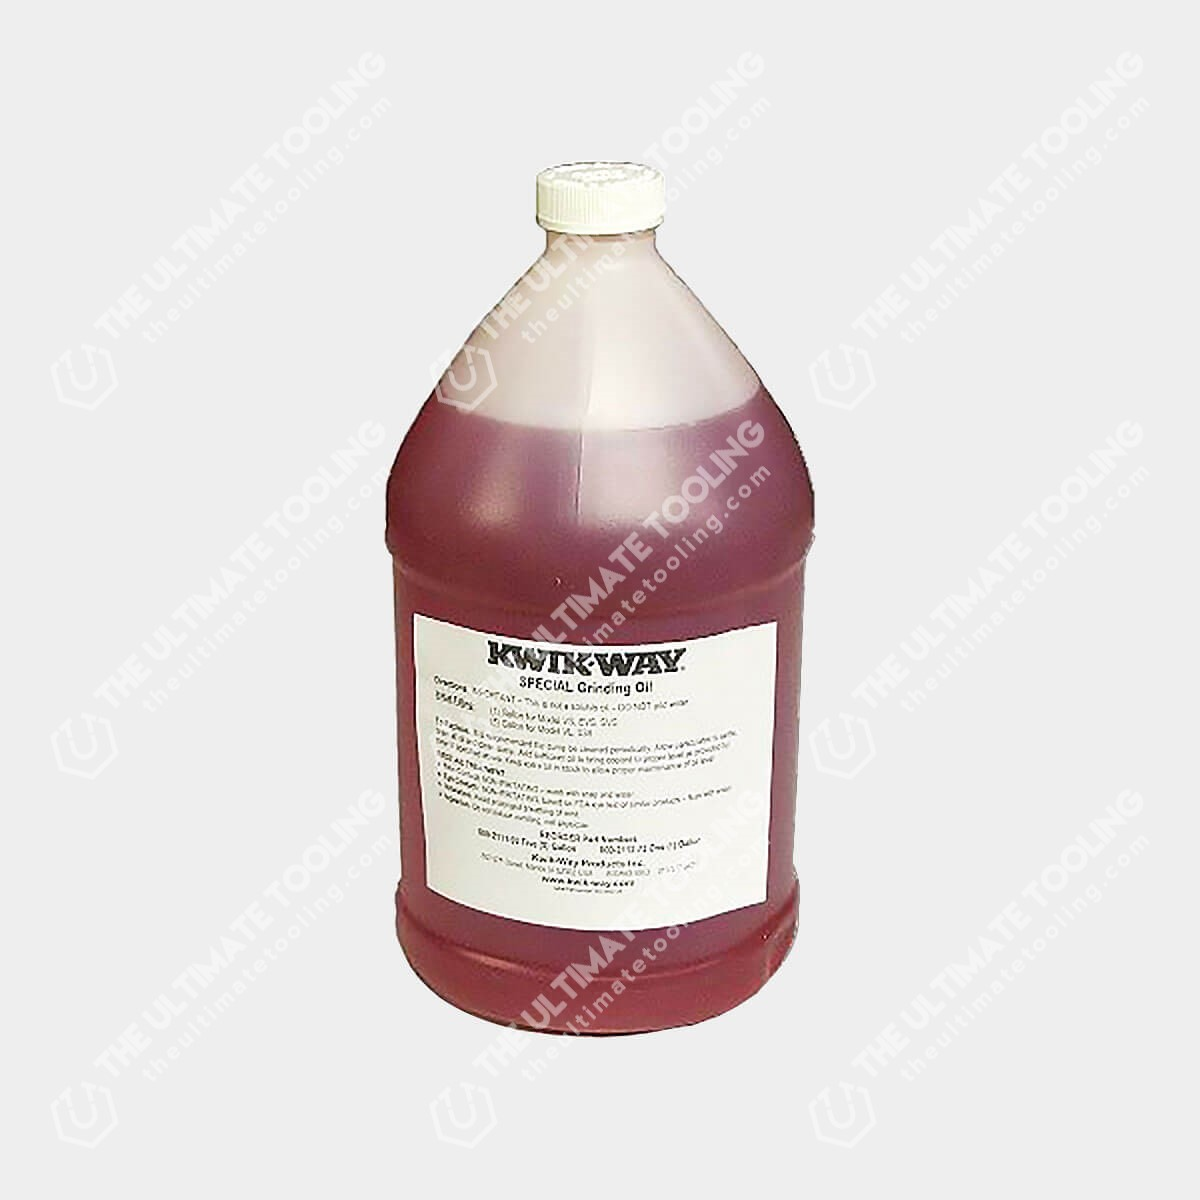 KE0001 - 1 Gallon Valve Grinding Oil